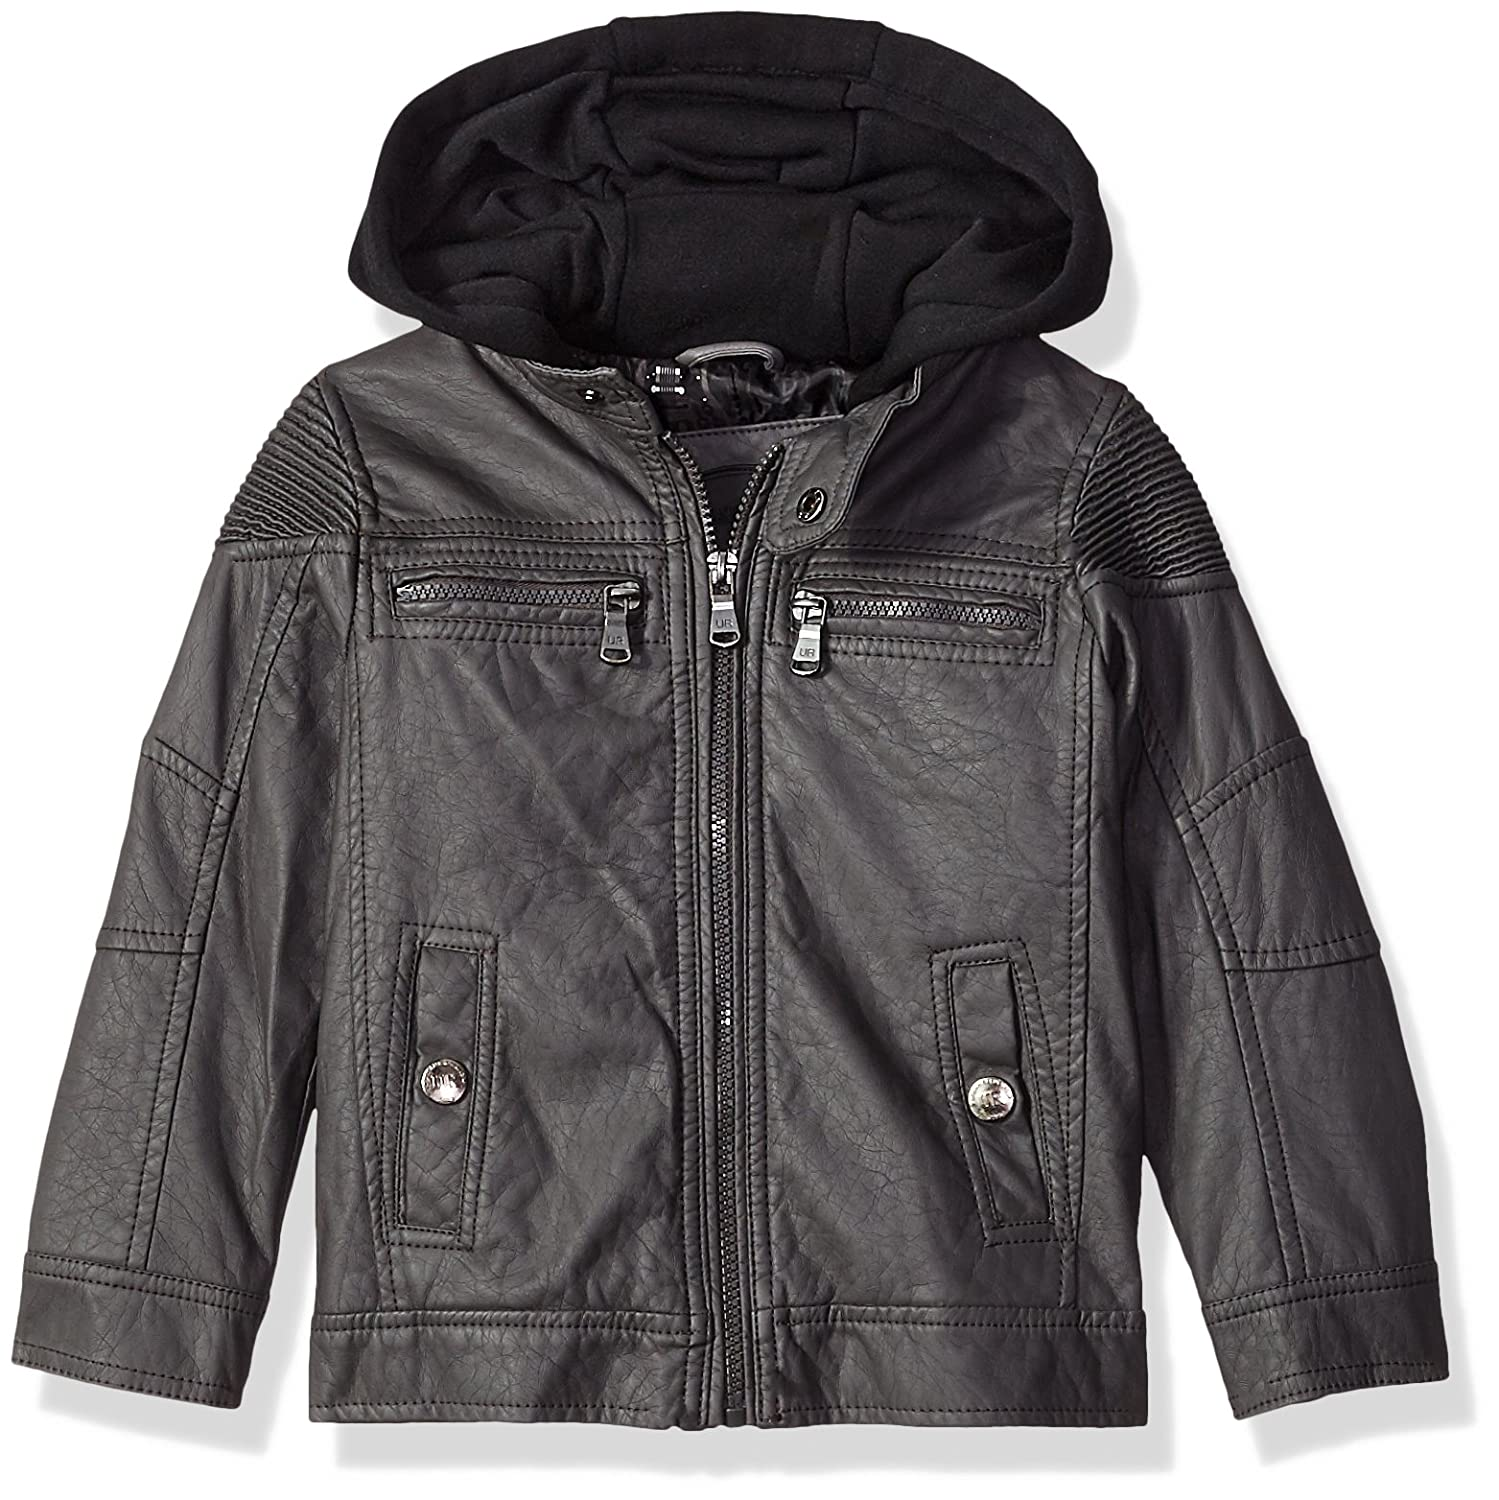 5167bad7cfd Amazon.com  Urban Republic Ur Boys Faux Leather Jacket  Clothing